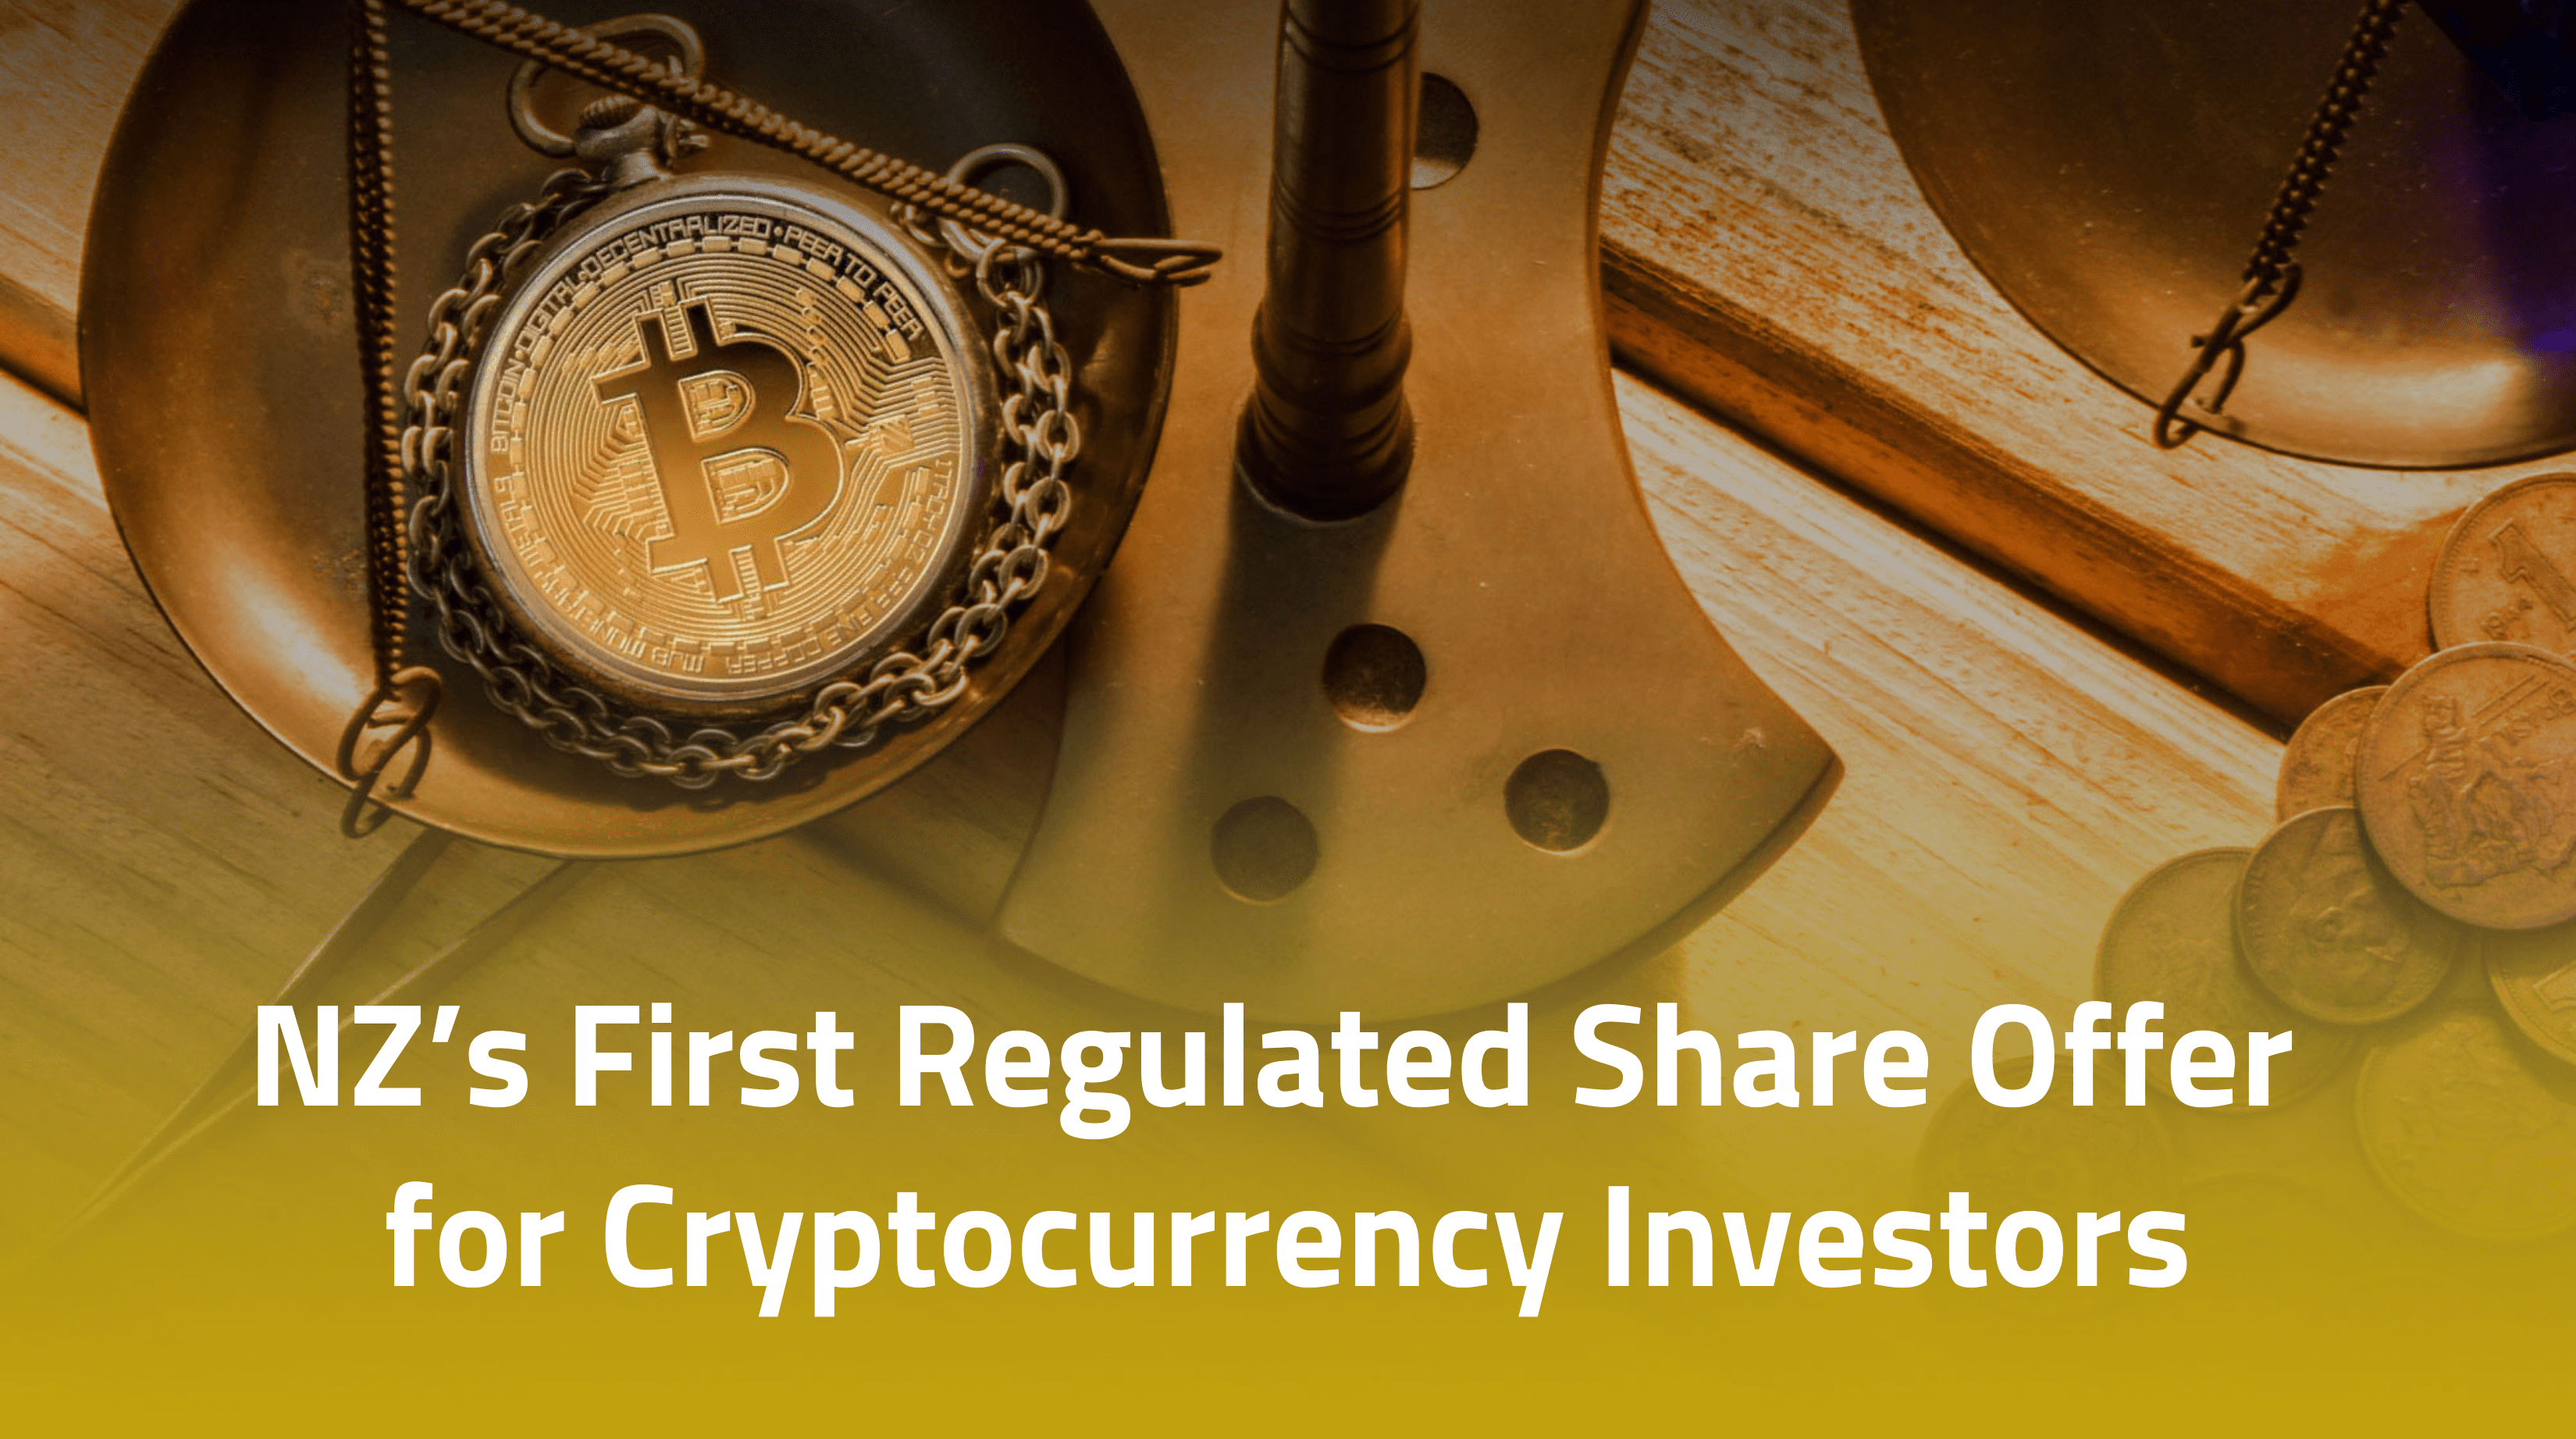 Regulated Share Offer for Cryptocurrencies